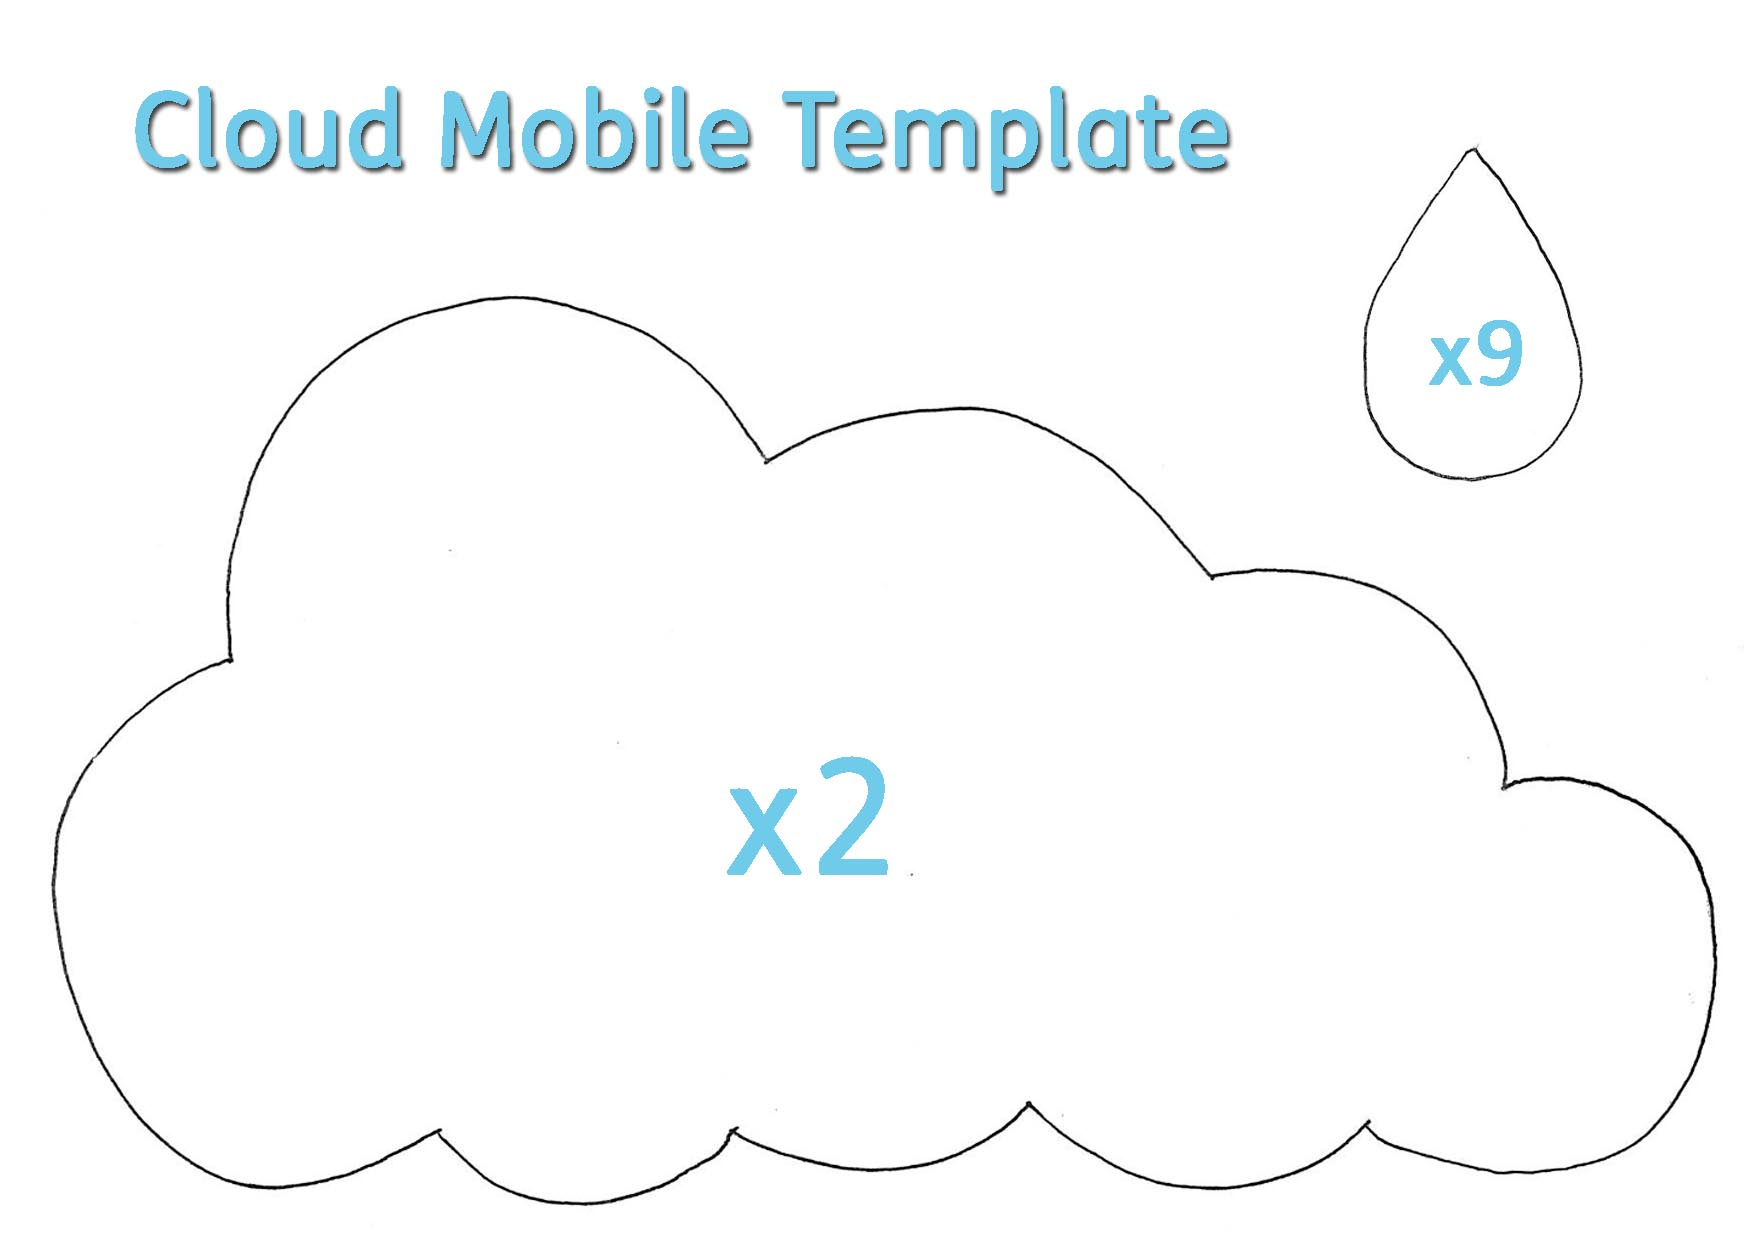 Rain Cloud Template Cloud template sfLSuBPg